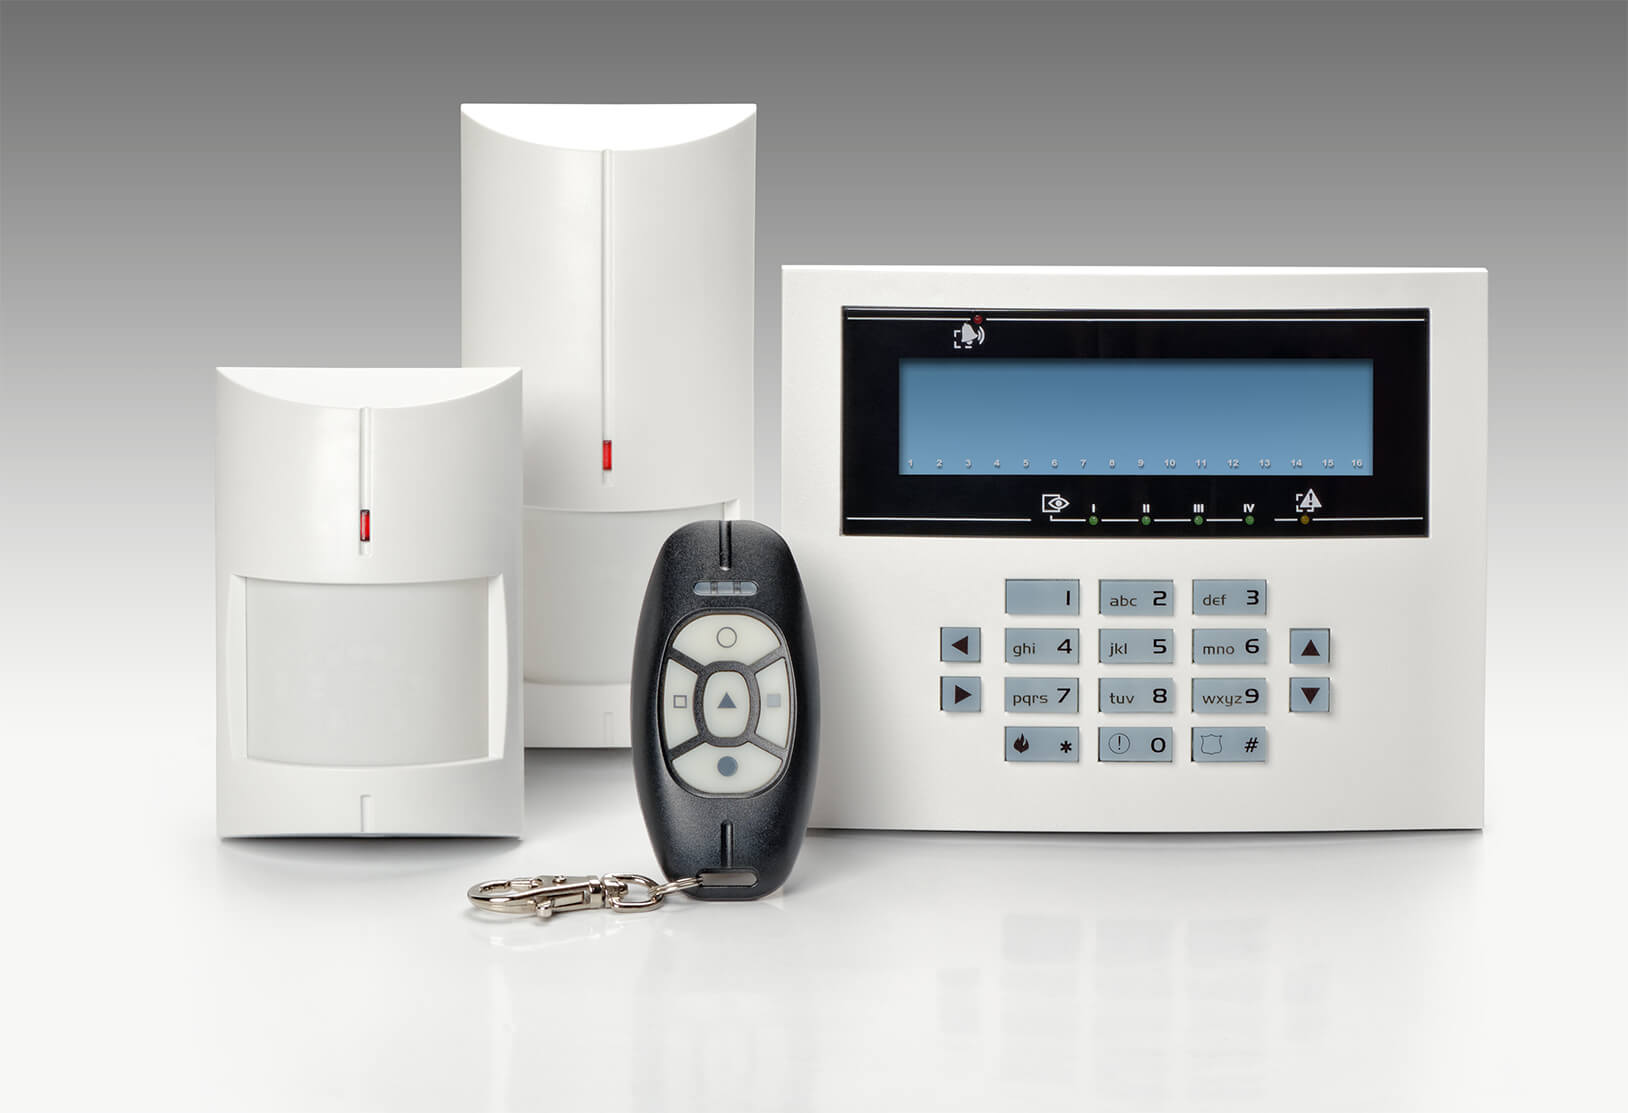 Business & Residential NACOSS Approved Burglar Alarms In Stepney E1 - Local Stepney E1 security company.Call 02078872244 - Dedicated to Safety & Security. Companies, shops and homes ..